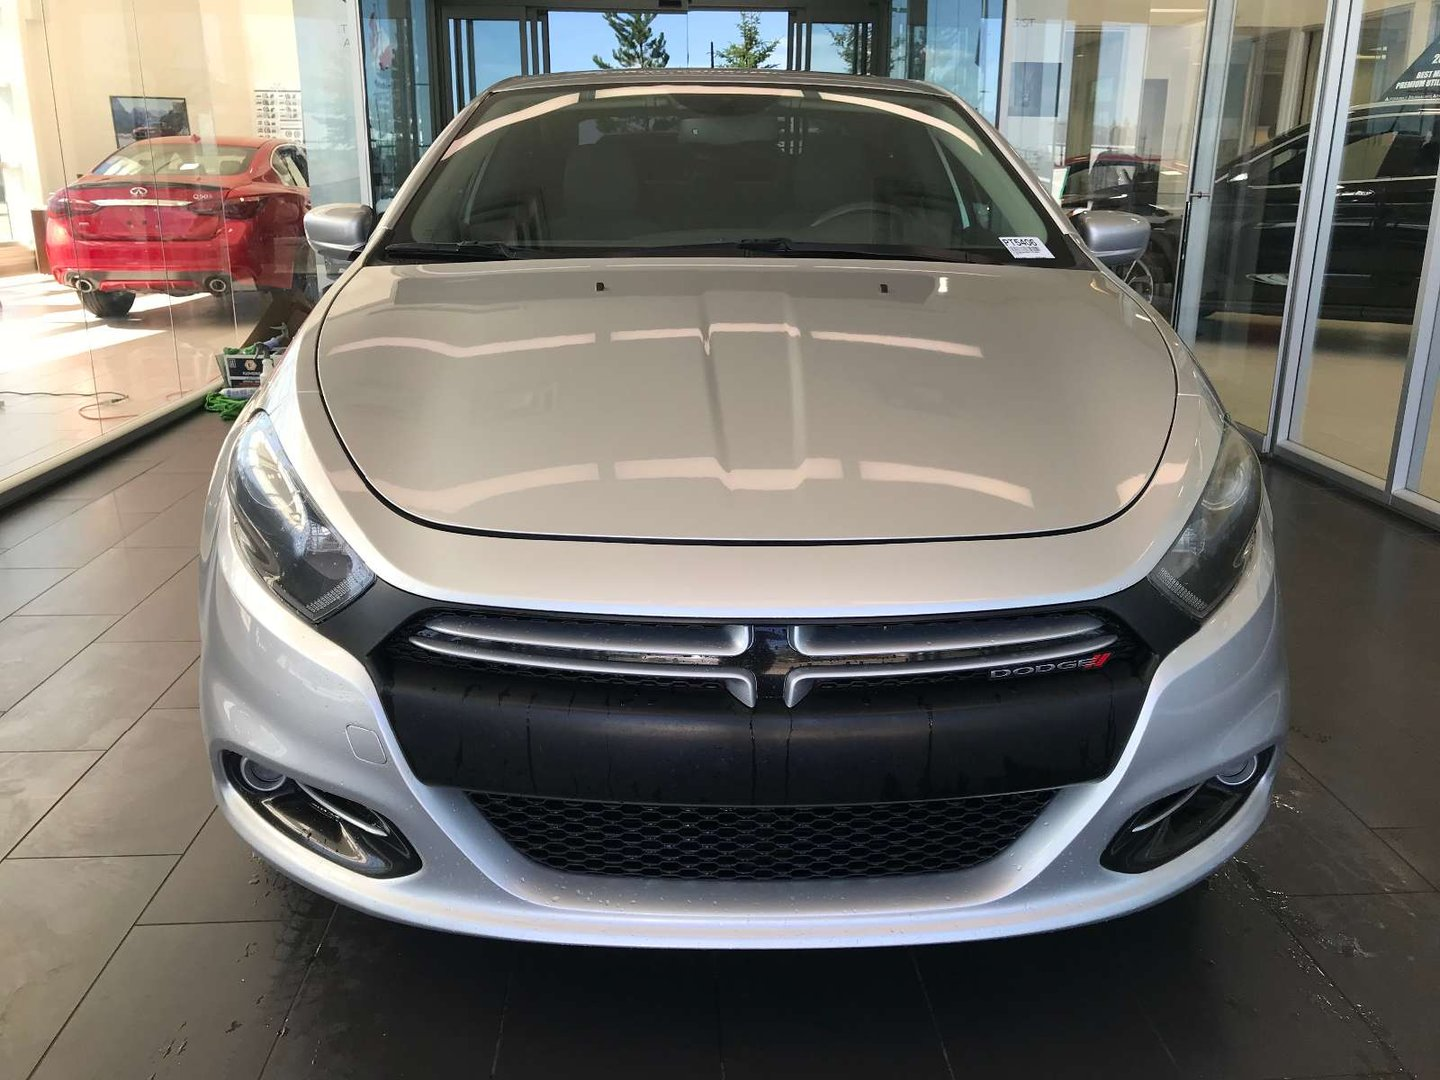 2013 Dodge Dart Rallye for sale in Edmonton, Alberta